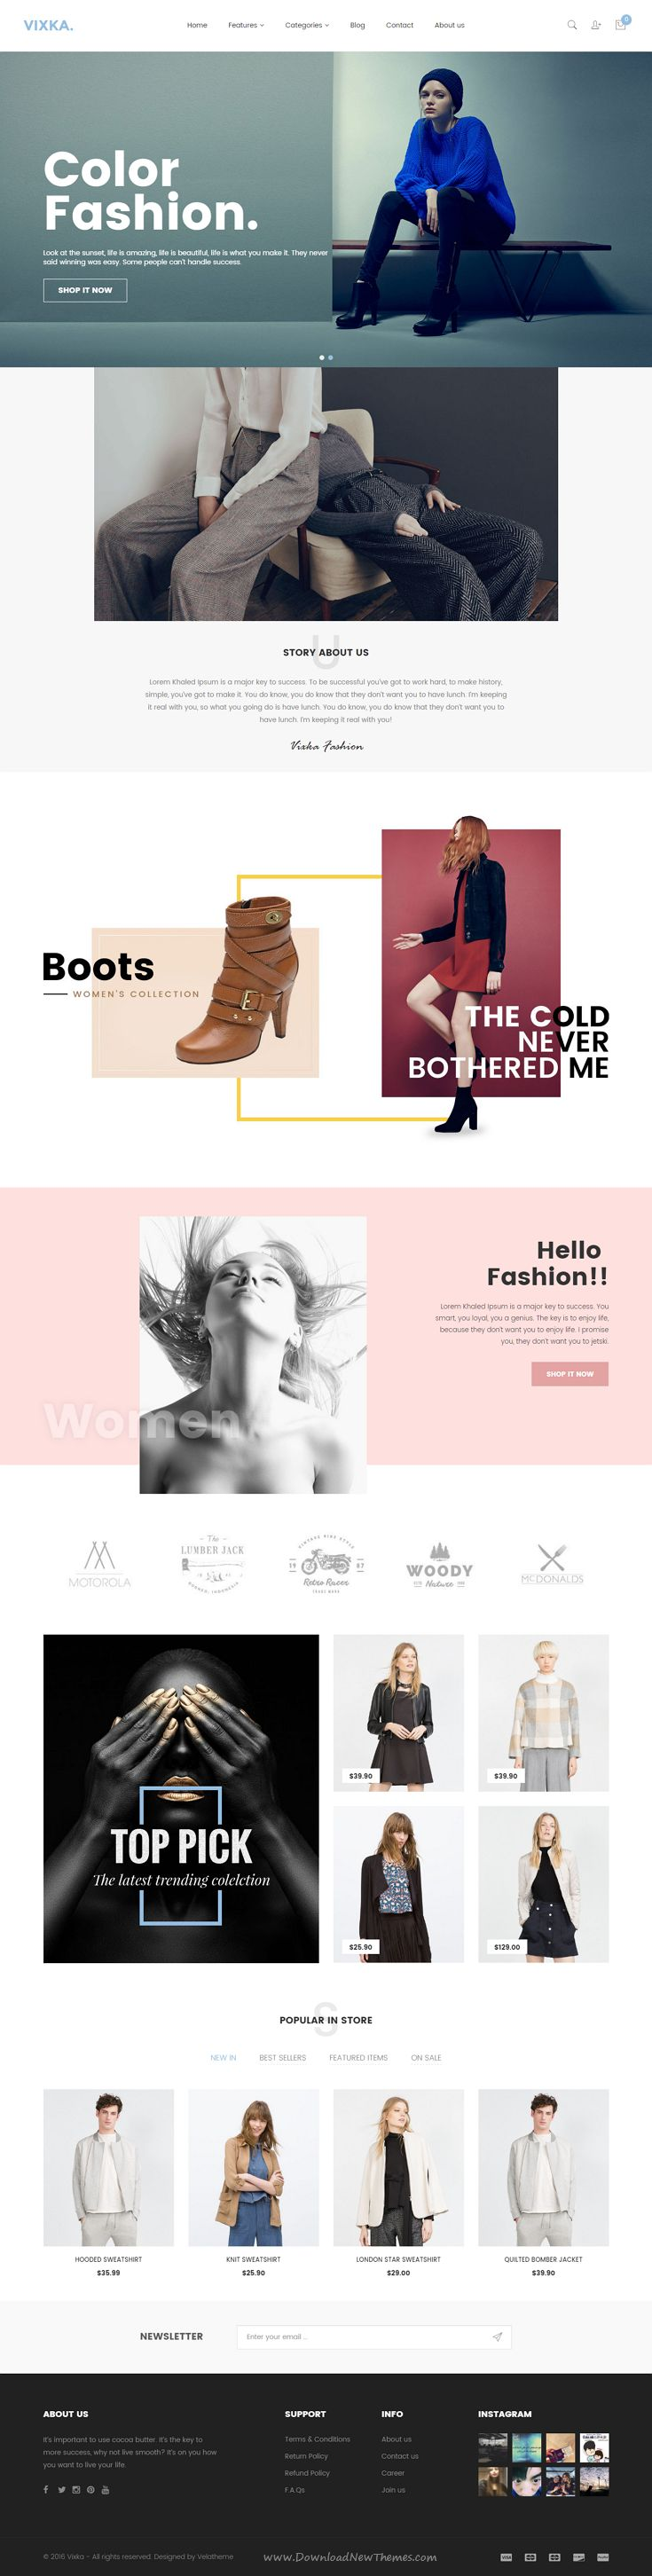 Vixka is a tidy and responsive Shopify theme suitable for any kind of boutique, clothes store, Fashion Shop, makeup products or similar websites that needs a feature rich and beautiful presence online with elegant and flexible design.